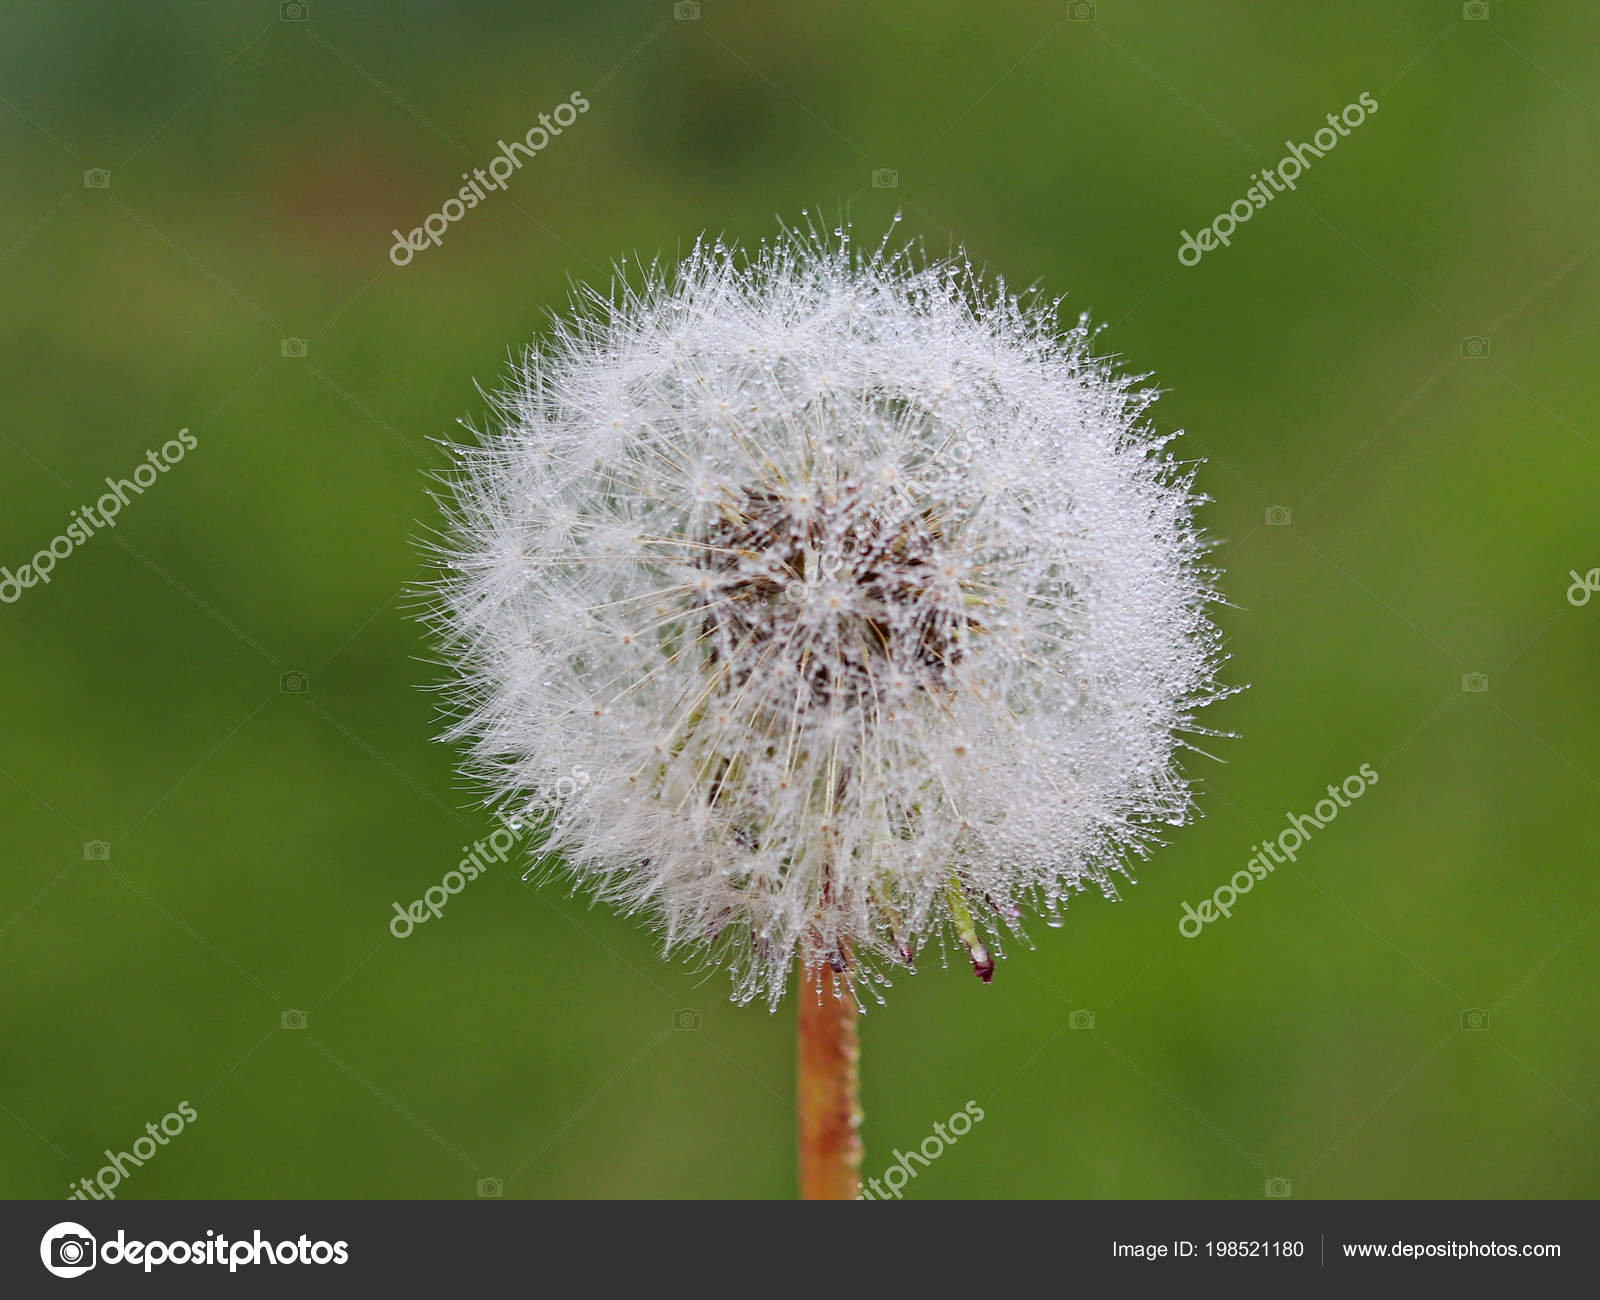 Macro photography white ball dandelion flower blurred green macro photography of a white ball of a dandelion flower on a blurred green background fauna of temperate climate green plants and the ecology of the mightylinksfo